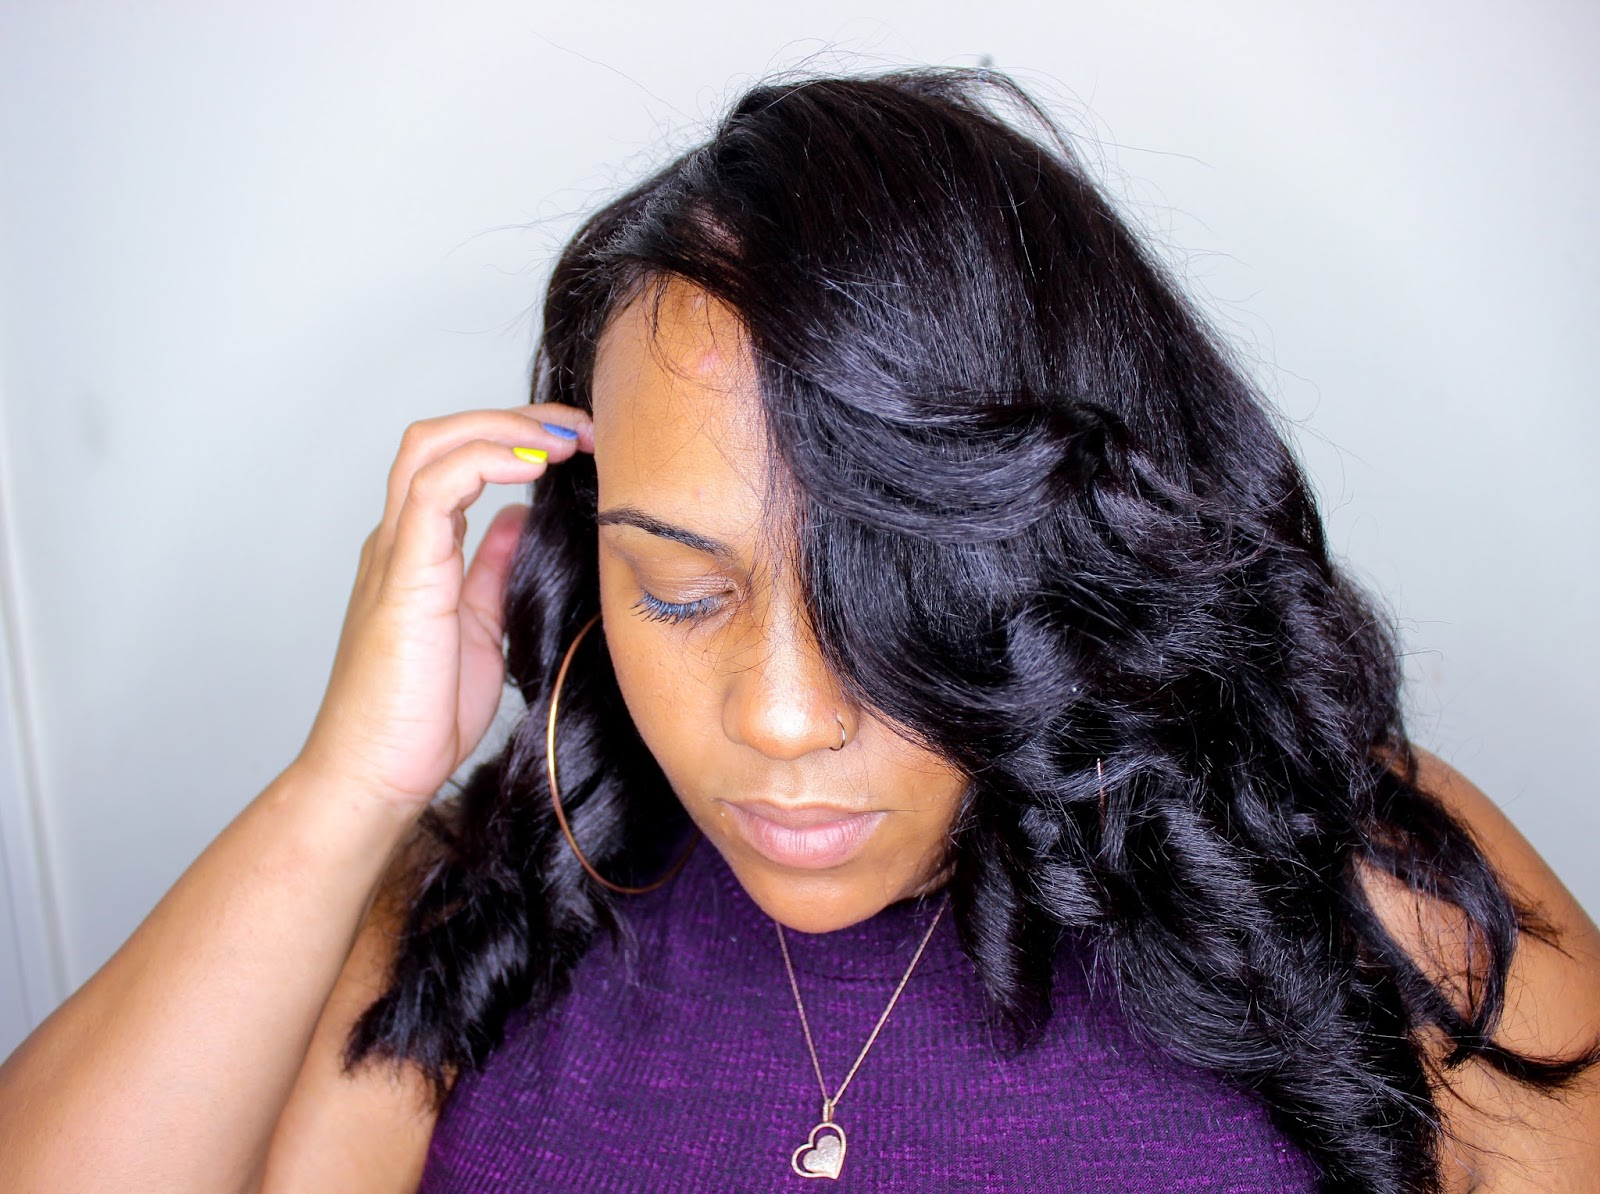 How To Slay Your Silk Press On Natural Hair Without Heat Damage